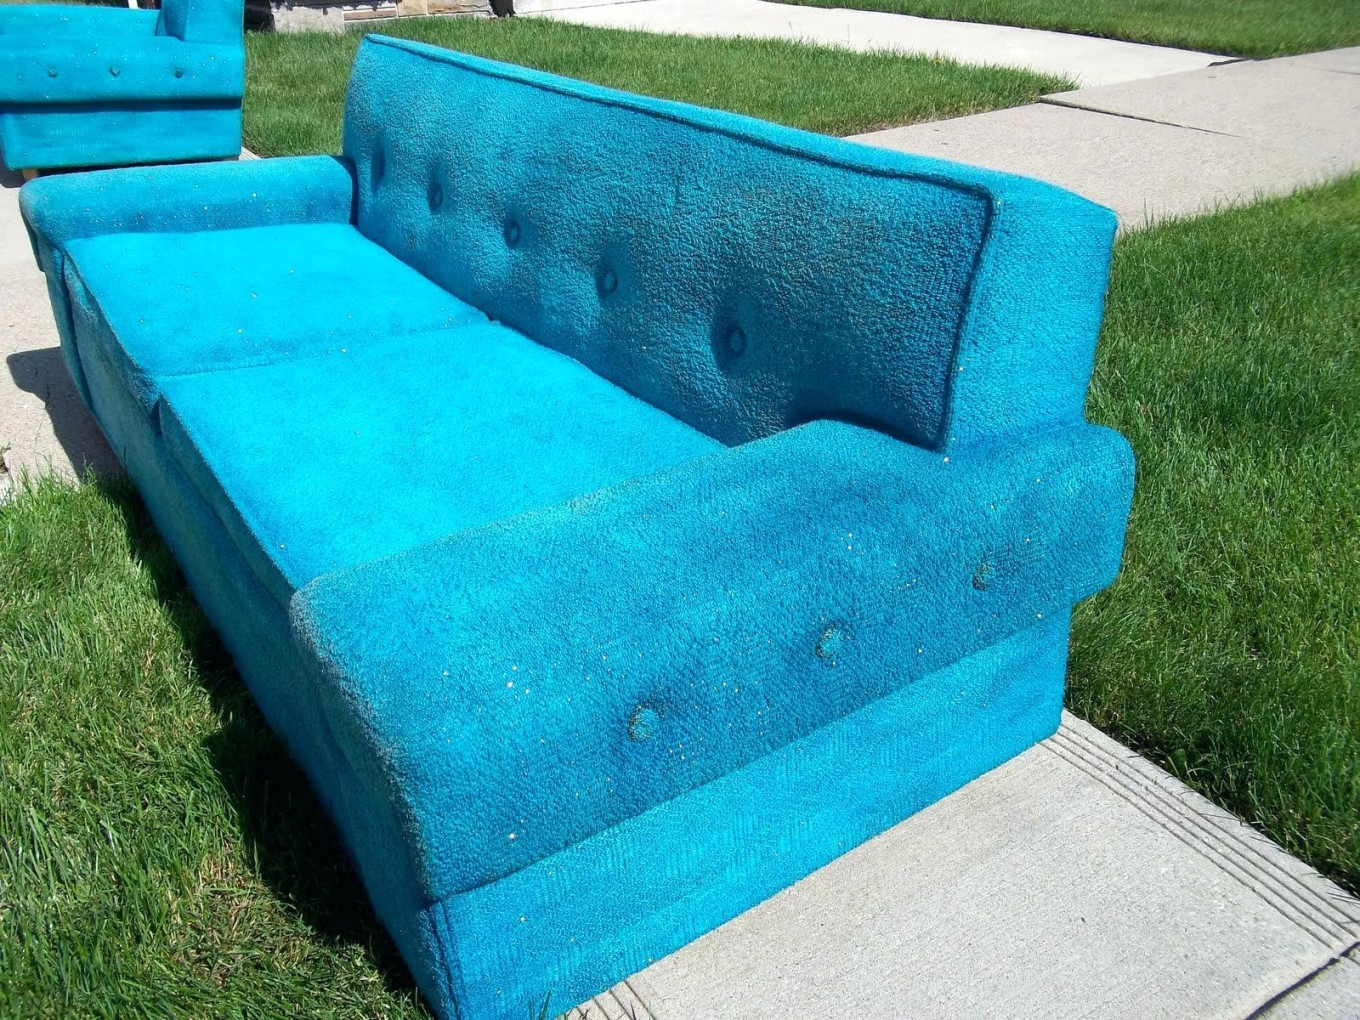 Overstock Chaise Lounges In Well Known Articles With Overstock Outdoor Chaise Lounge Cushions Tag Inside (View 9 of 15)